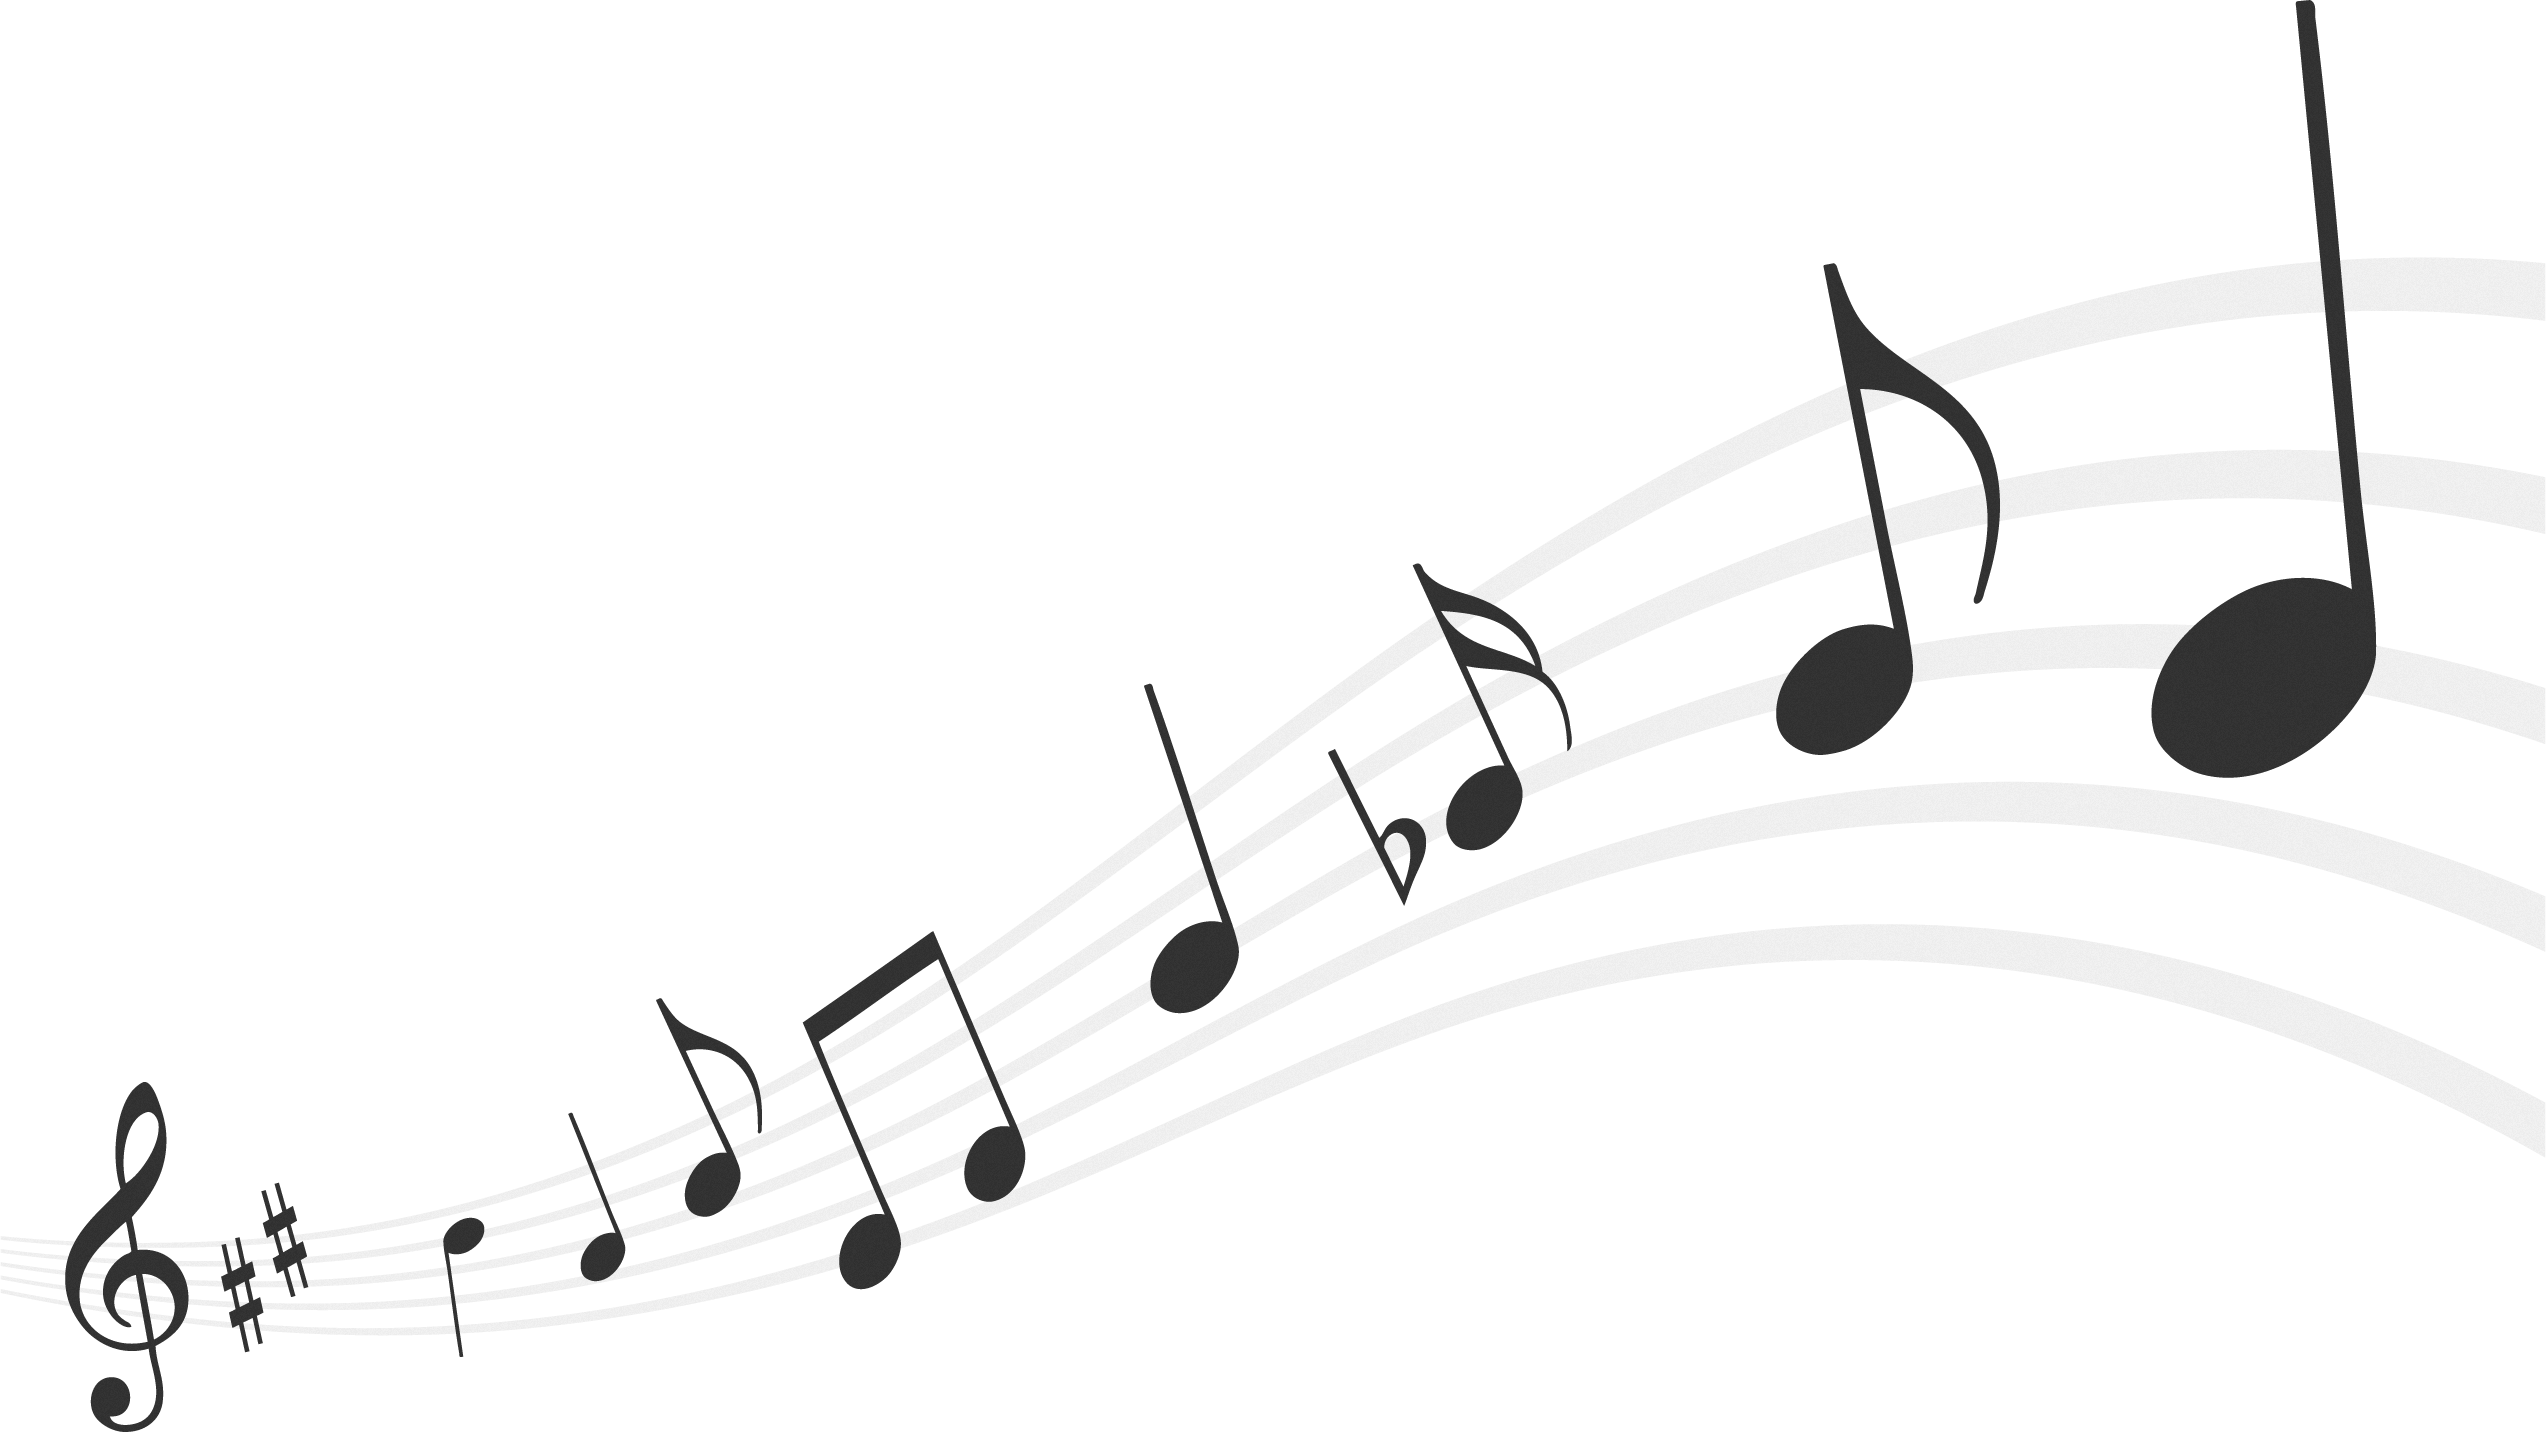 Free download of Music Notes High Quality PNG